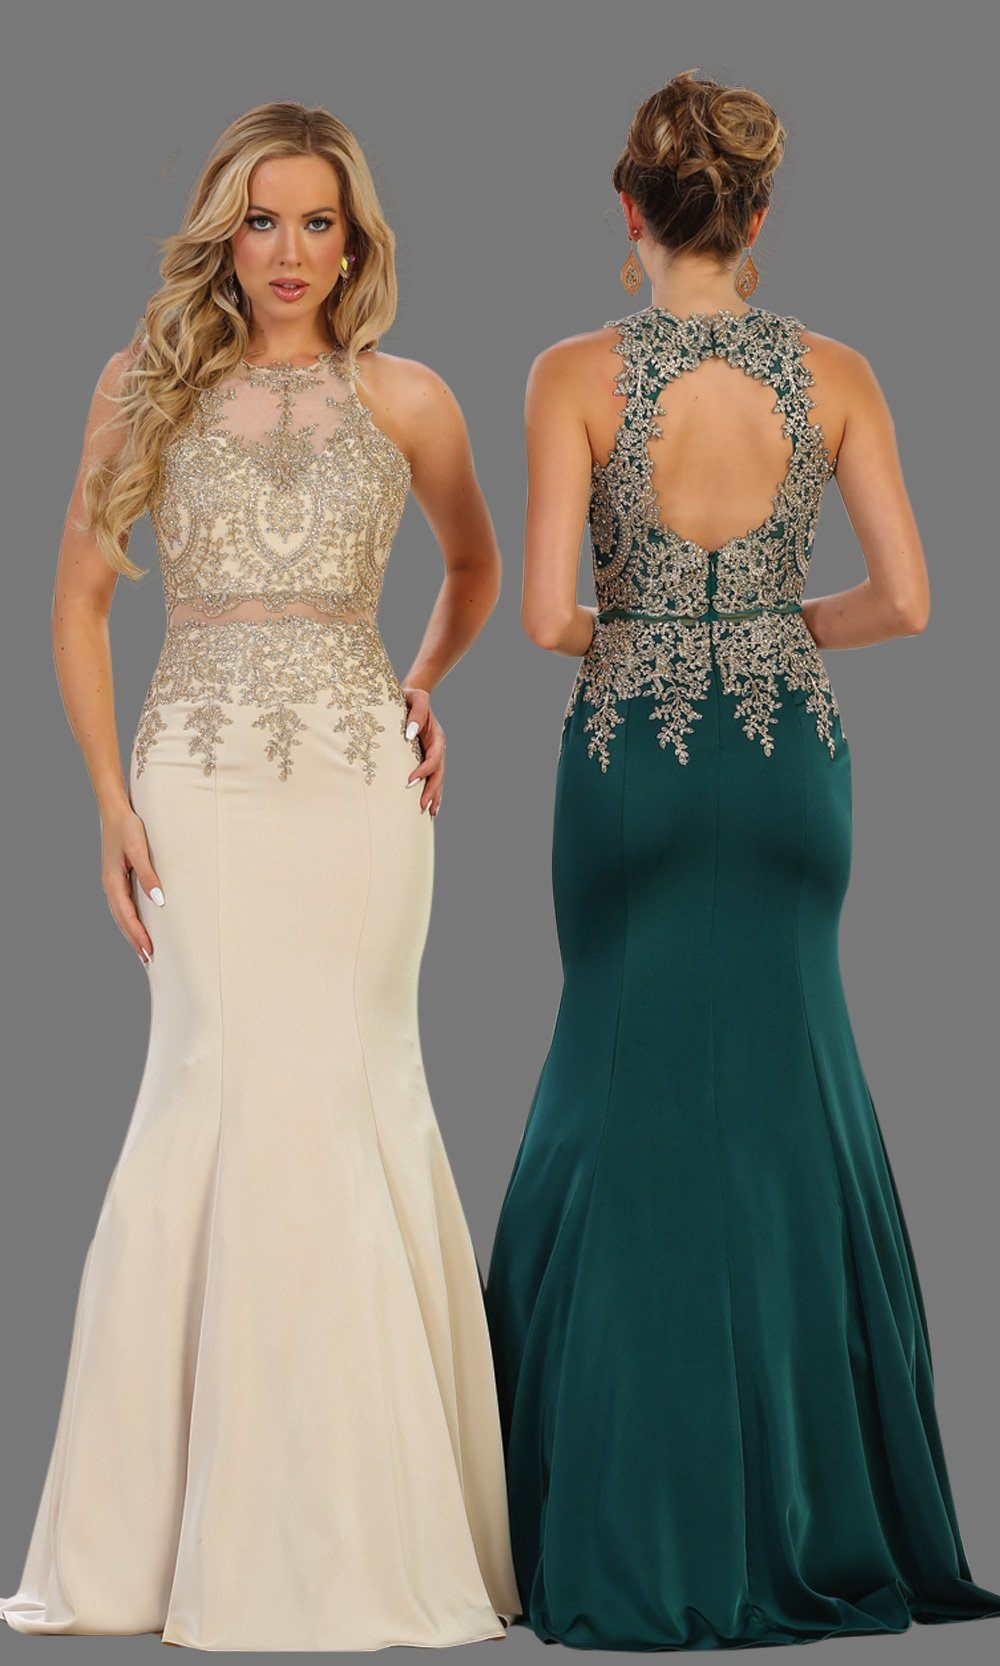 Long hunter green mermaid dress with open back. It has beaded gold lace bodice. Perfect for Prom, dark green engagement dress, wedding reception dress, formal wedding guest dress or party gown. Plus size available.